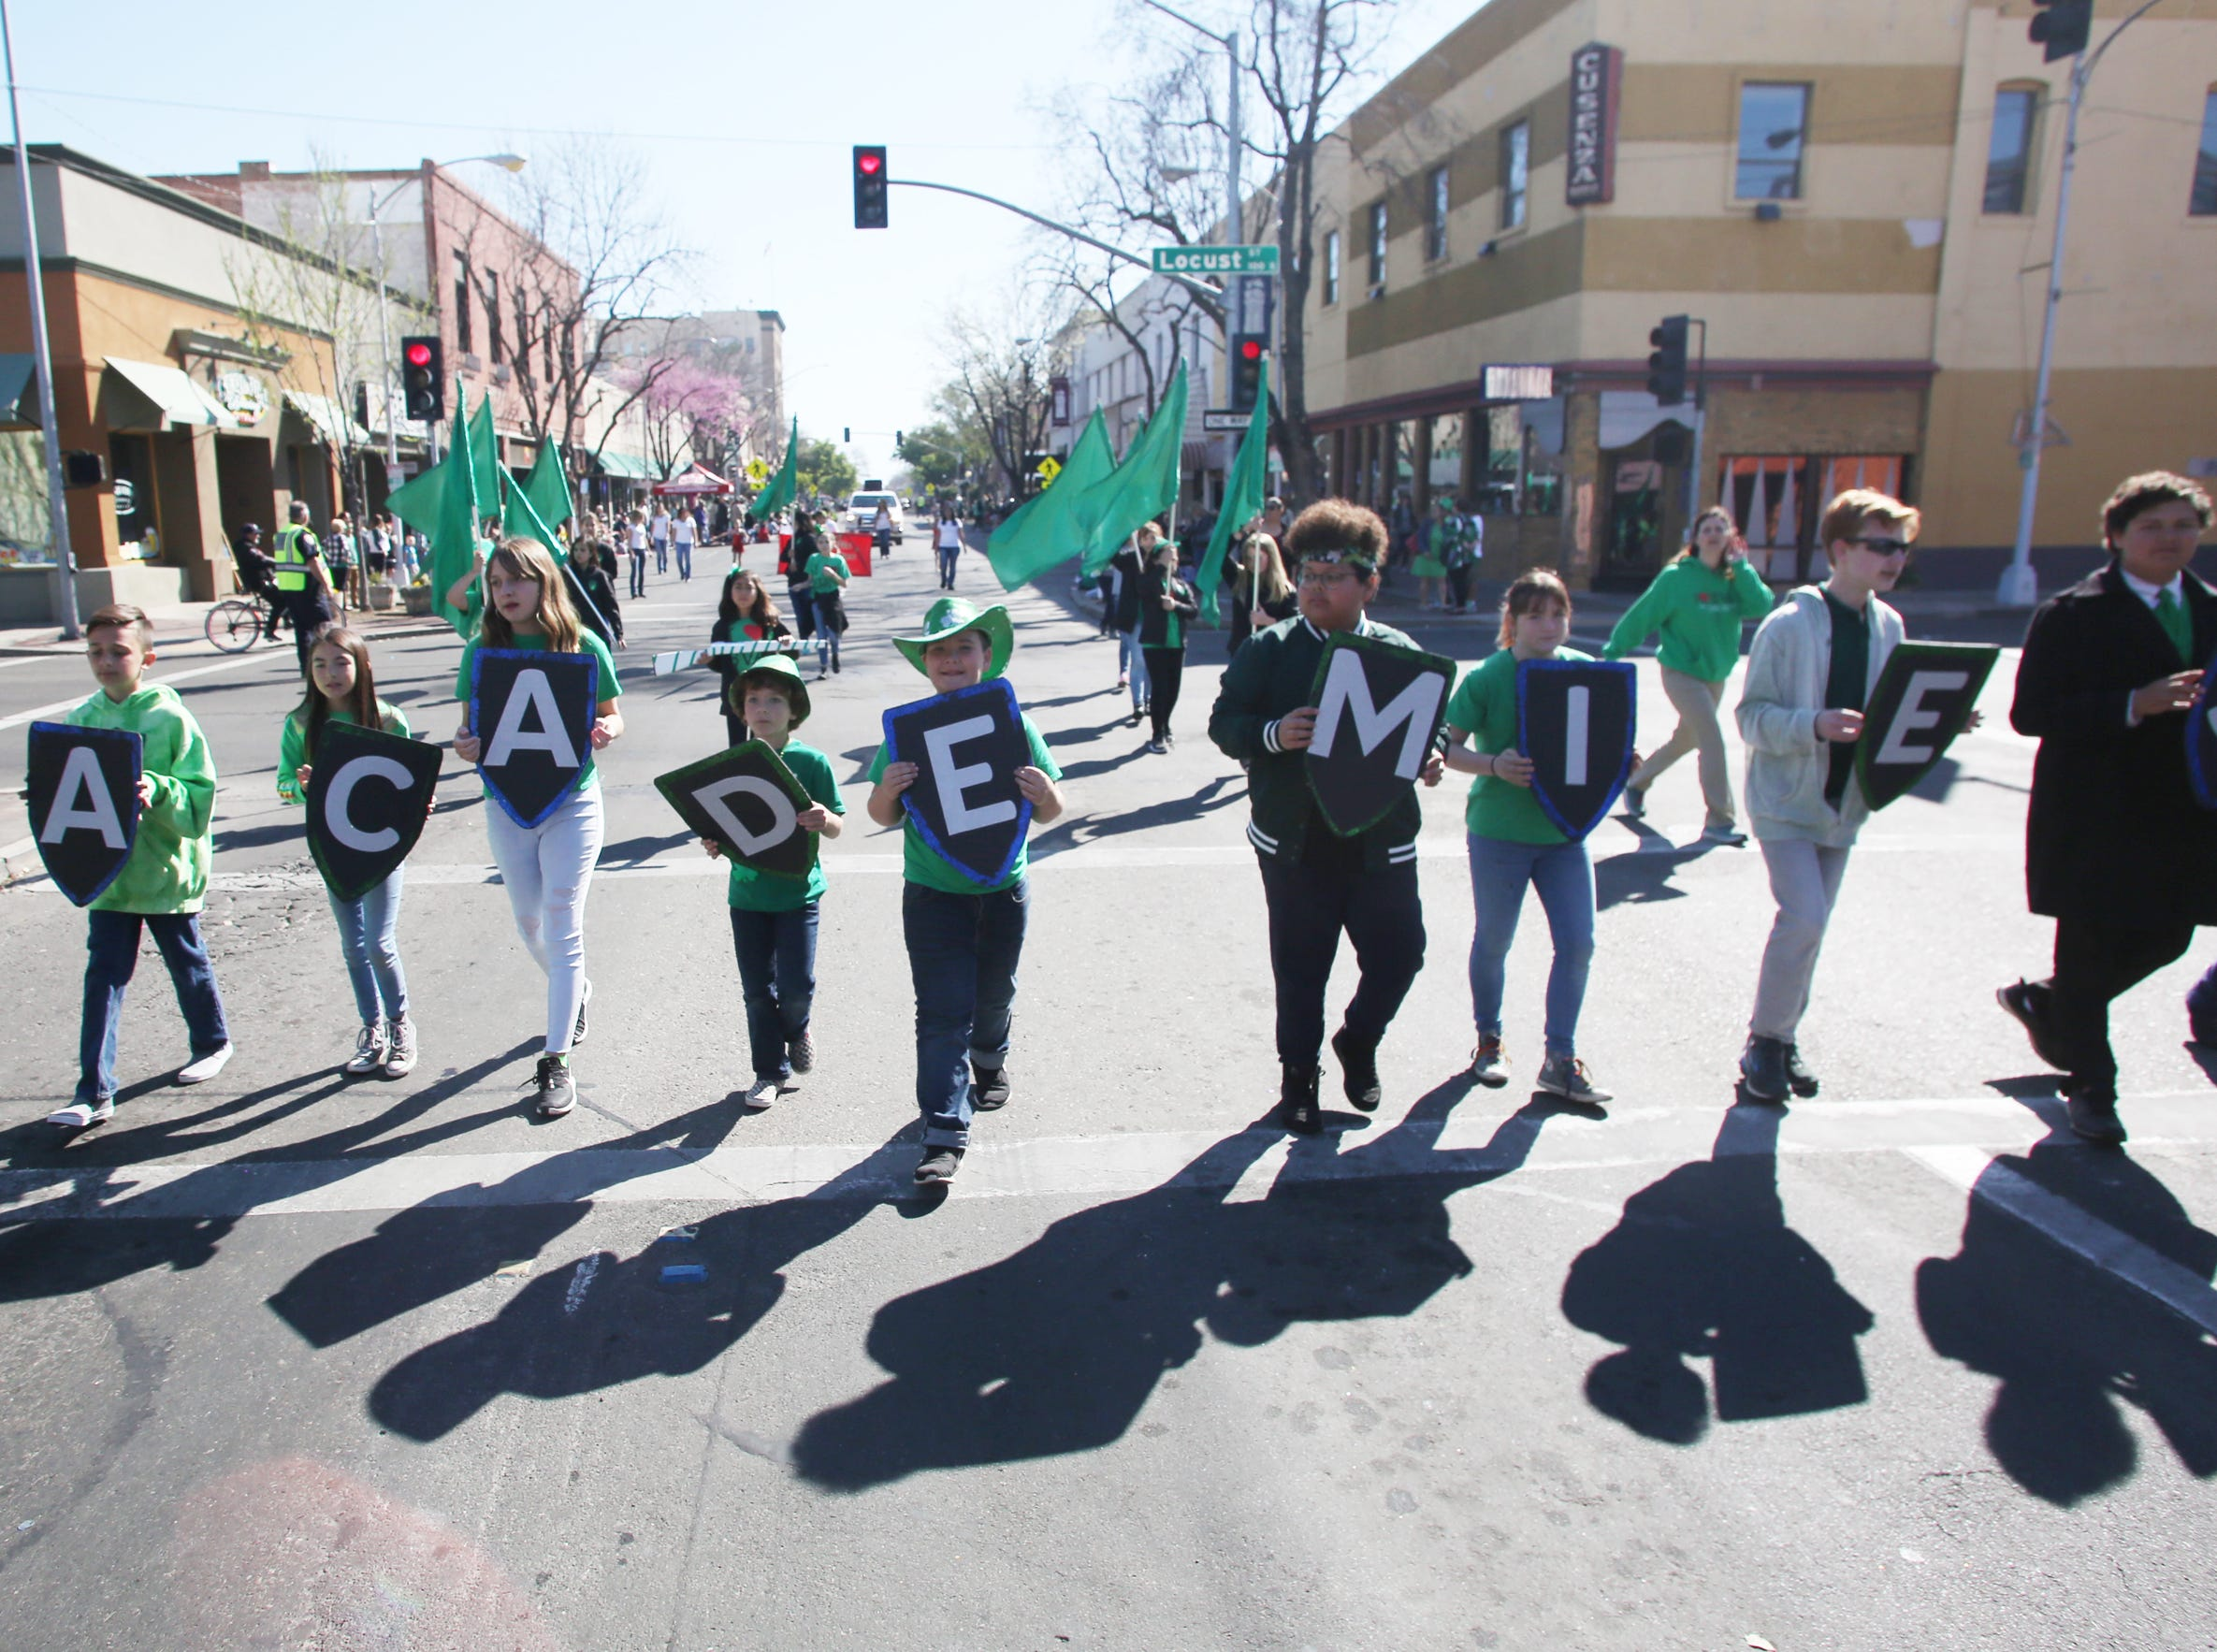 The Academies march on at this year's St. Patrick's Day parade rolling through Main Street Saturday, March 16, 2019 in Visalia, Calif.